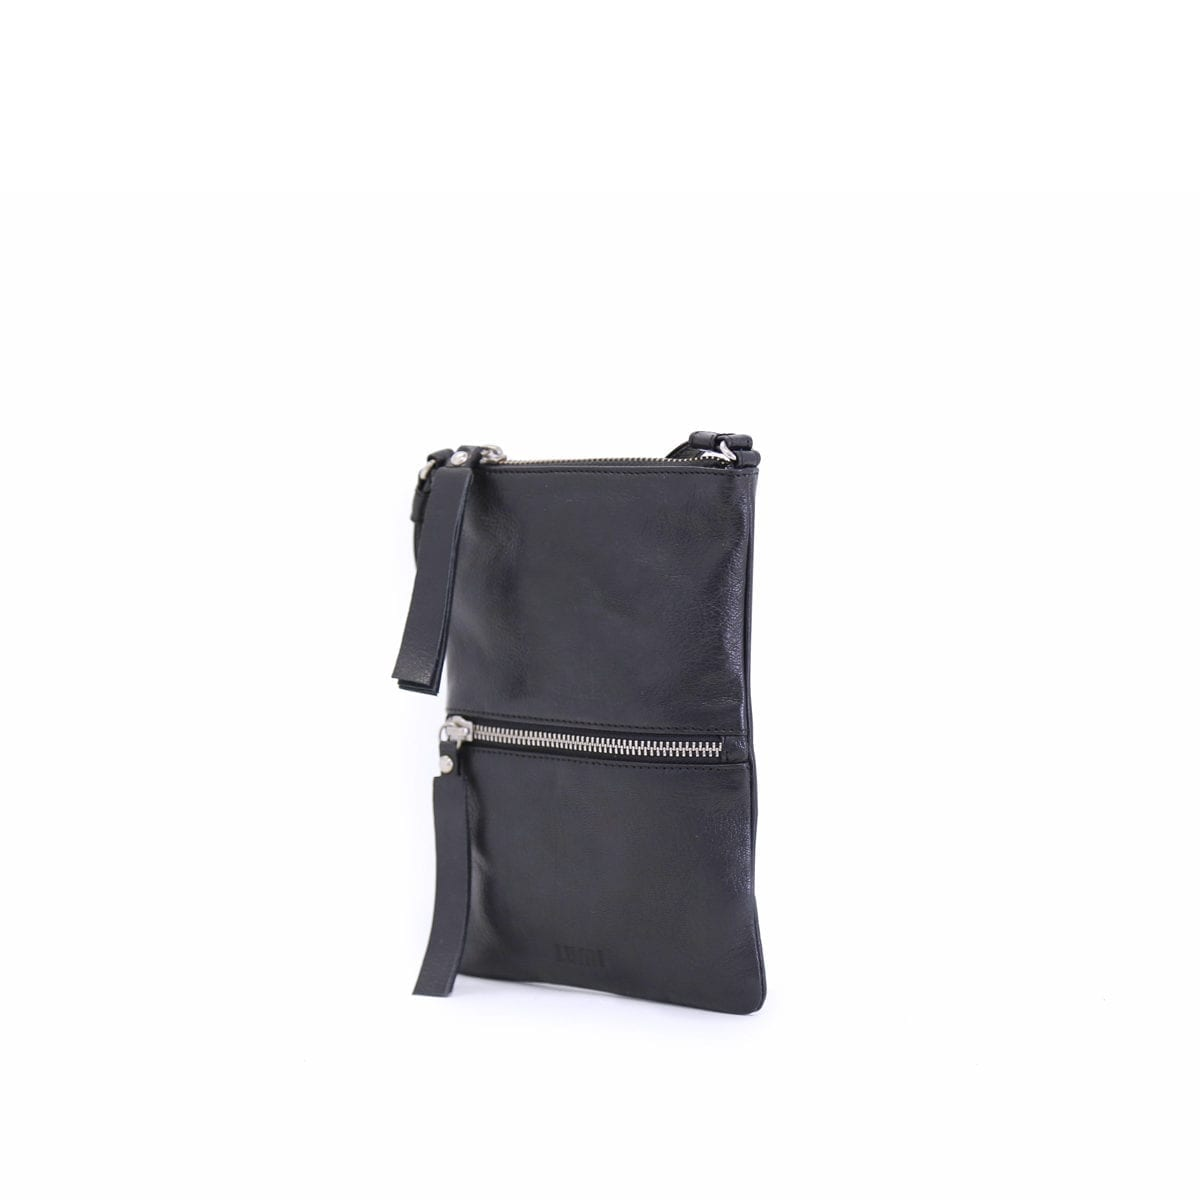 LUMI Hilda Double Pouch, in black, is made of vegetable tanned goat leather. Chemical free dyeing.